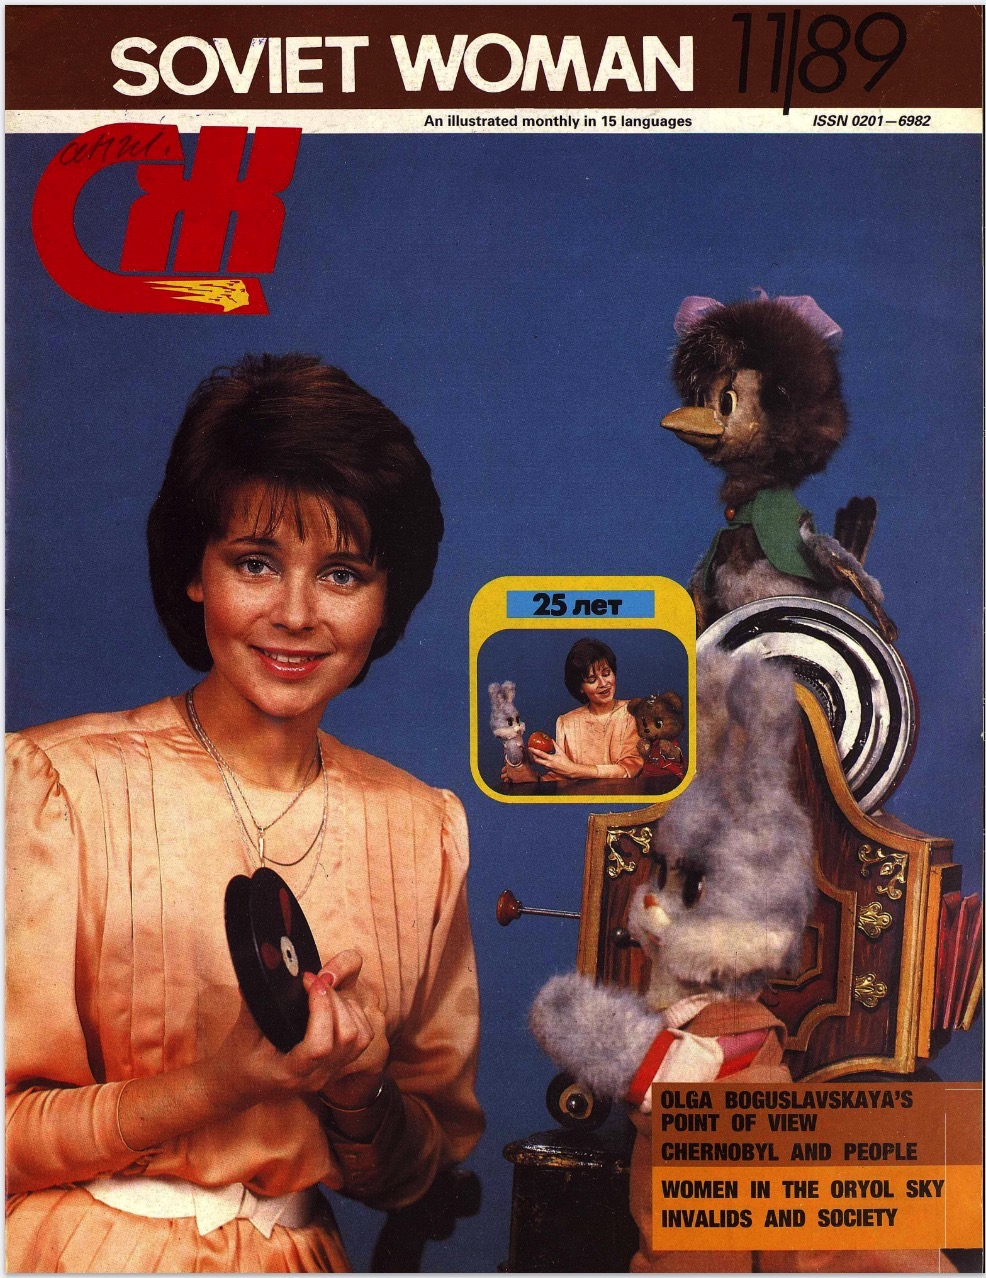 Front cover of Soviet Women, Nov 1989, depicting a woman with 2 fluffytoy animals.